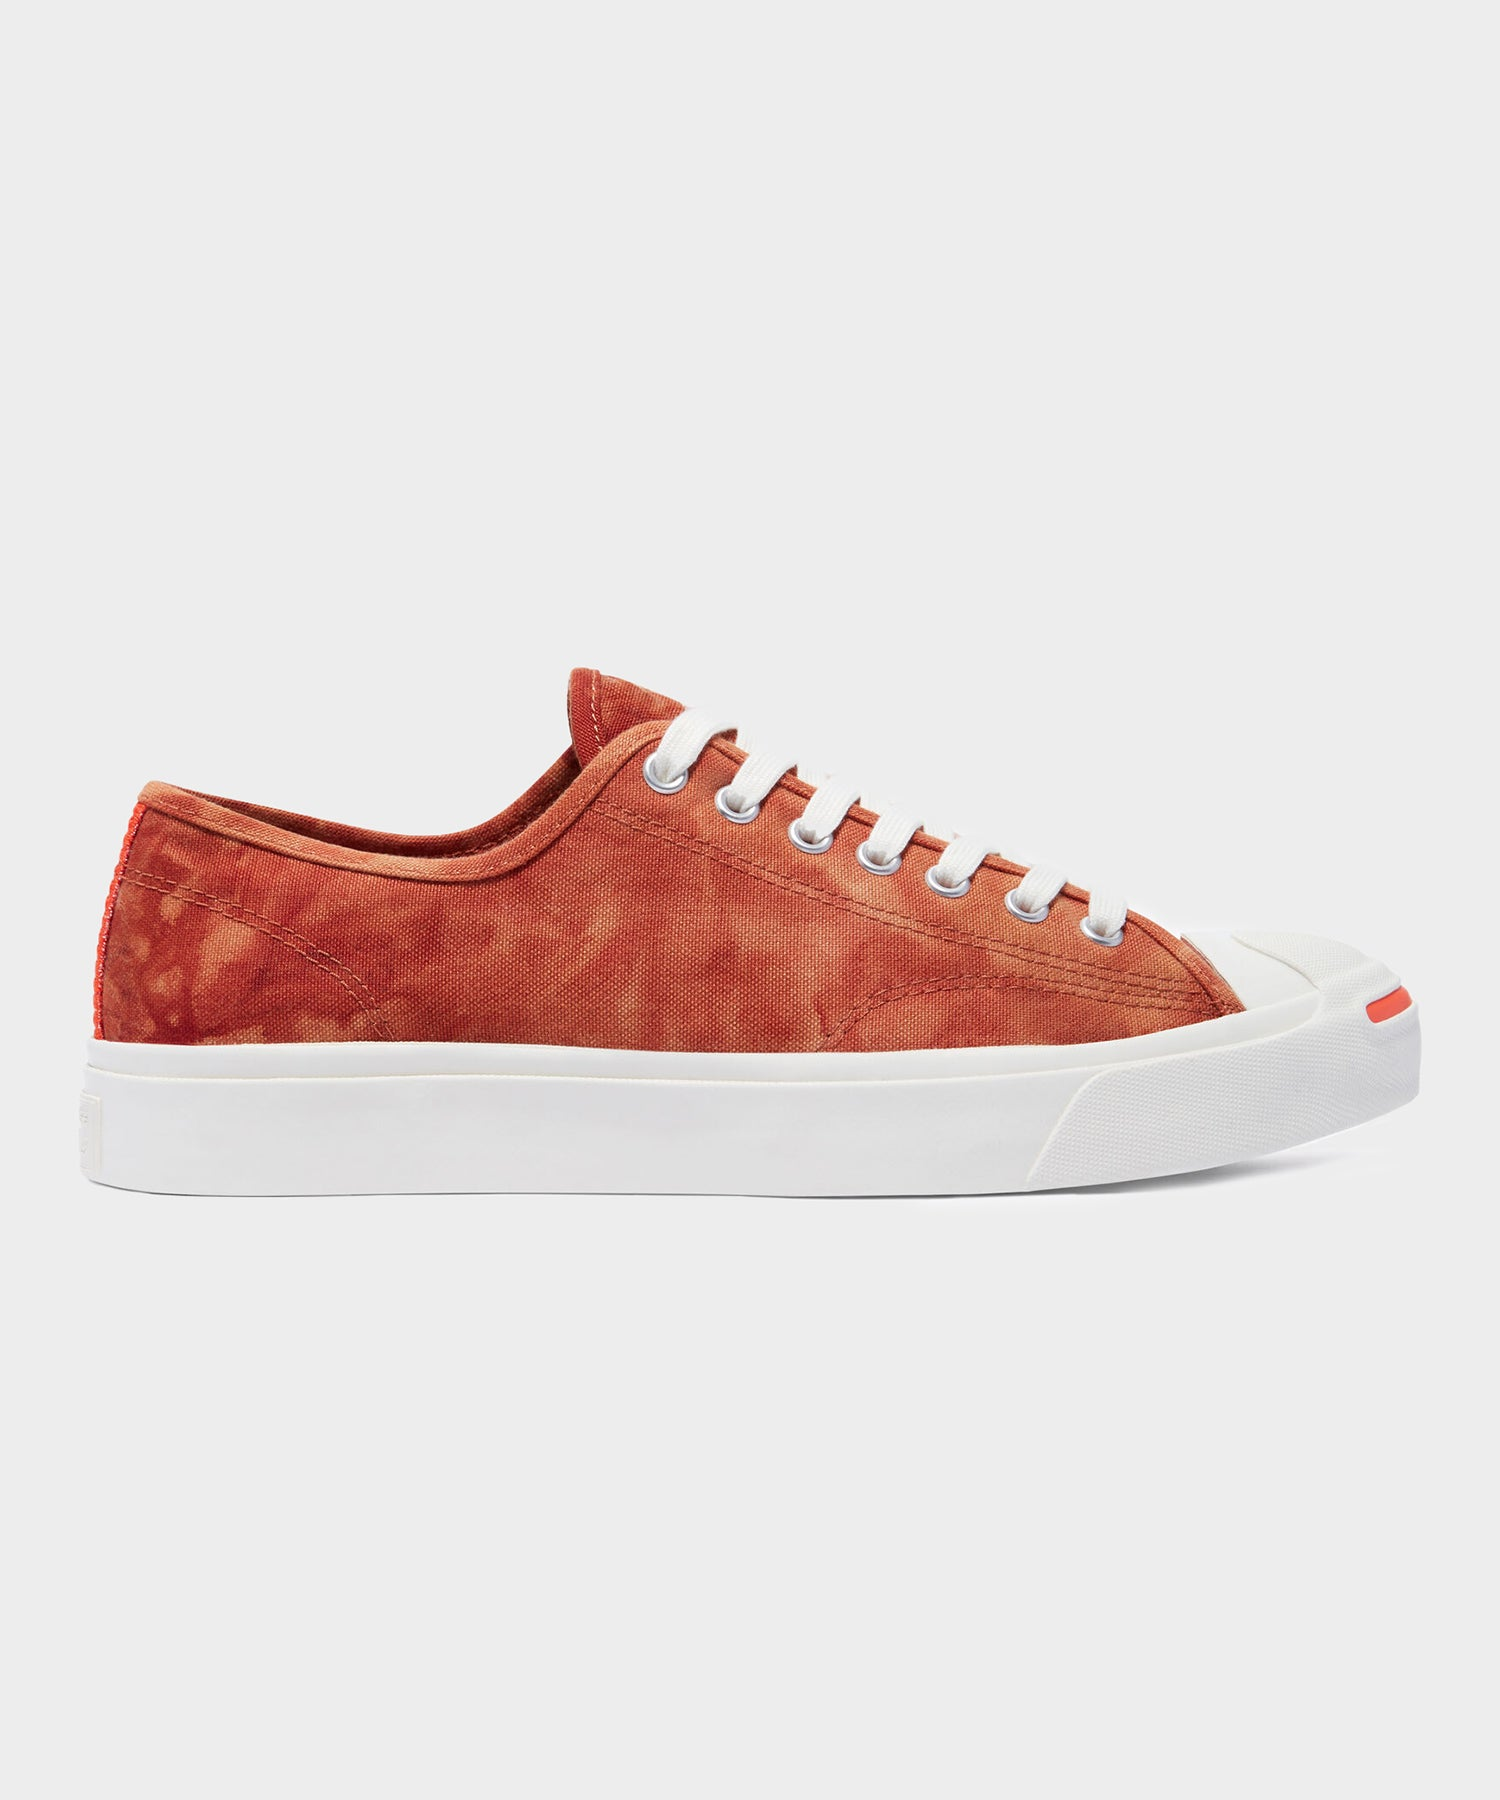 Converse Jack Purcell Summer Daze in Red Bark/Bright Poppy